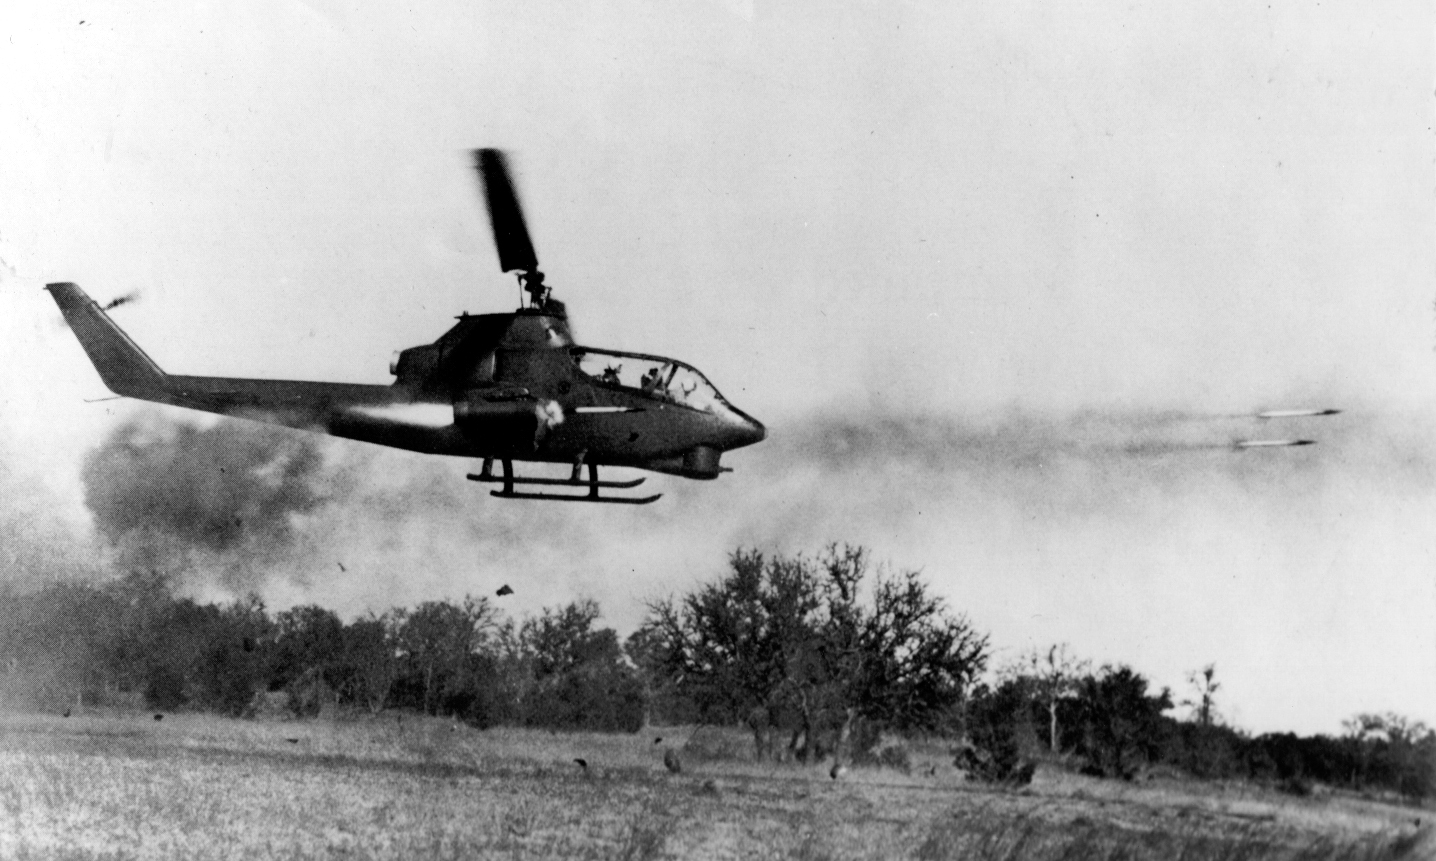 vietnam helicopter pilots with How Vietnam War Shaped My Life And My Career on  also Vietnam War Helicopter Pilot To Receive Medal Of Honor moreover Today In Manhunting History October 3 besides 2 furthermore Chinese Peoples Armed Police Corps Cpap.